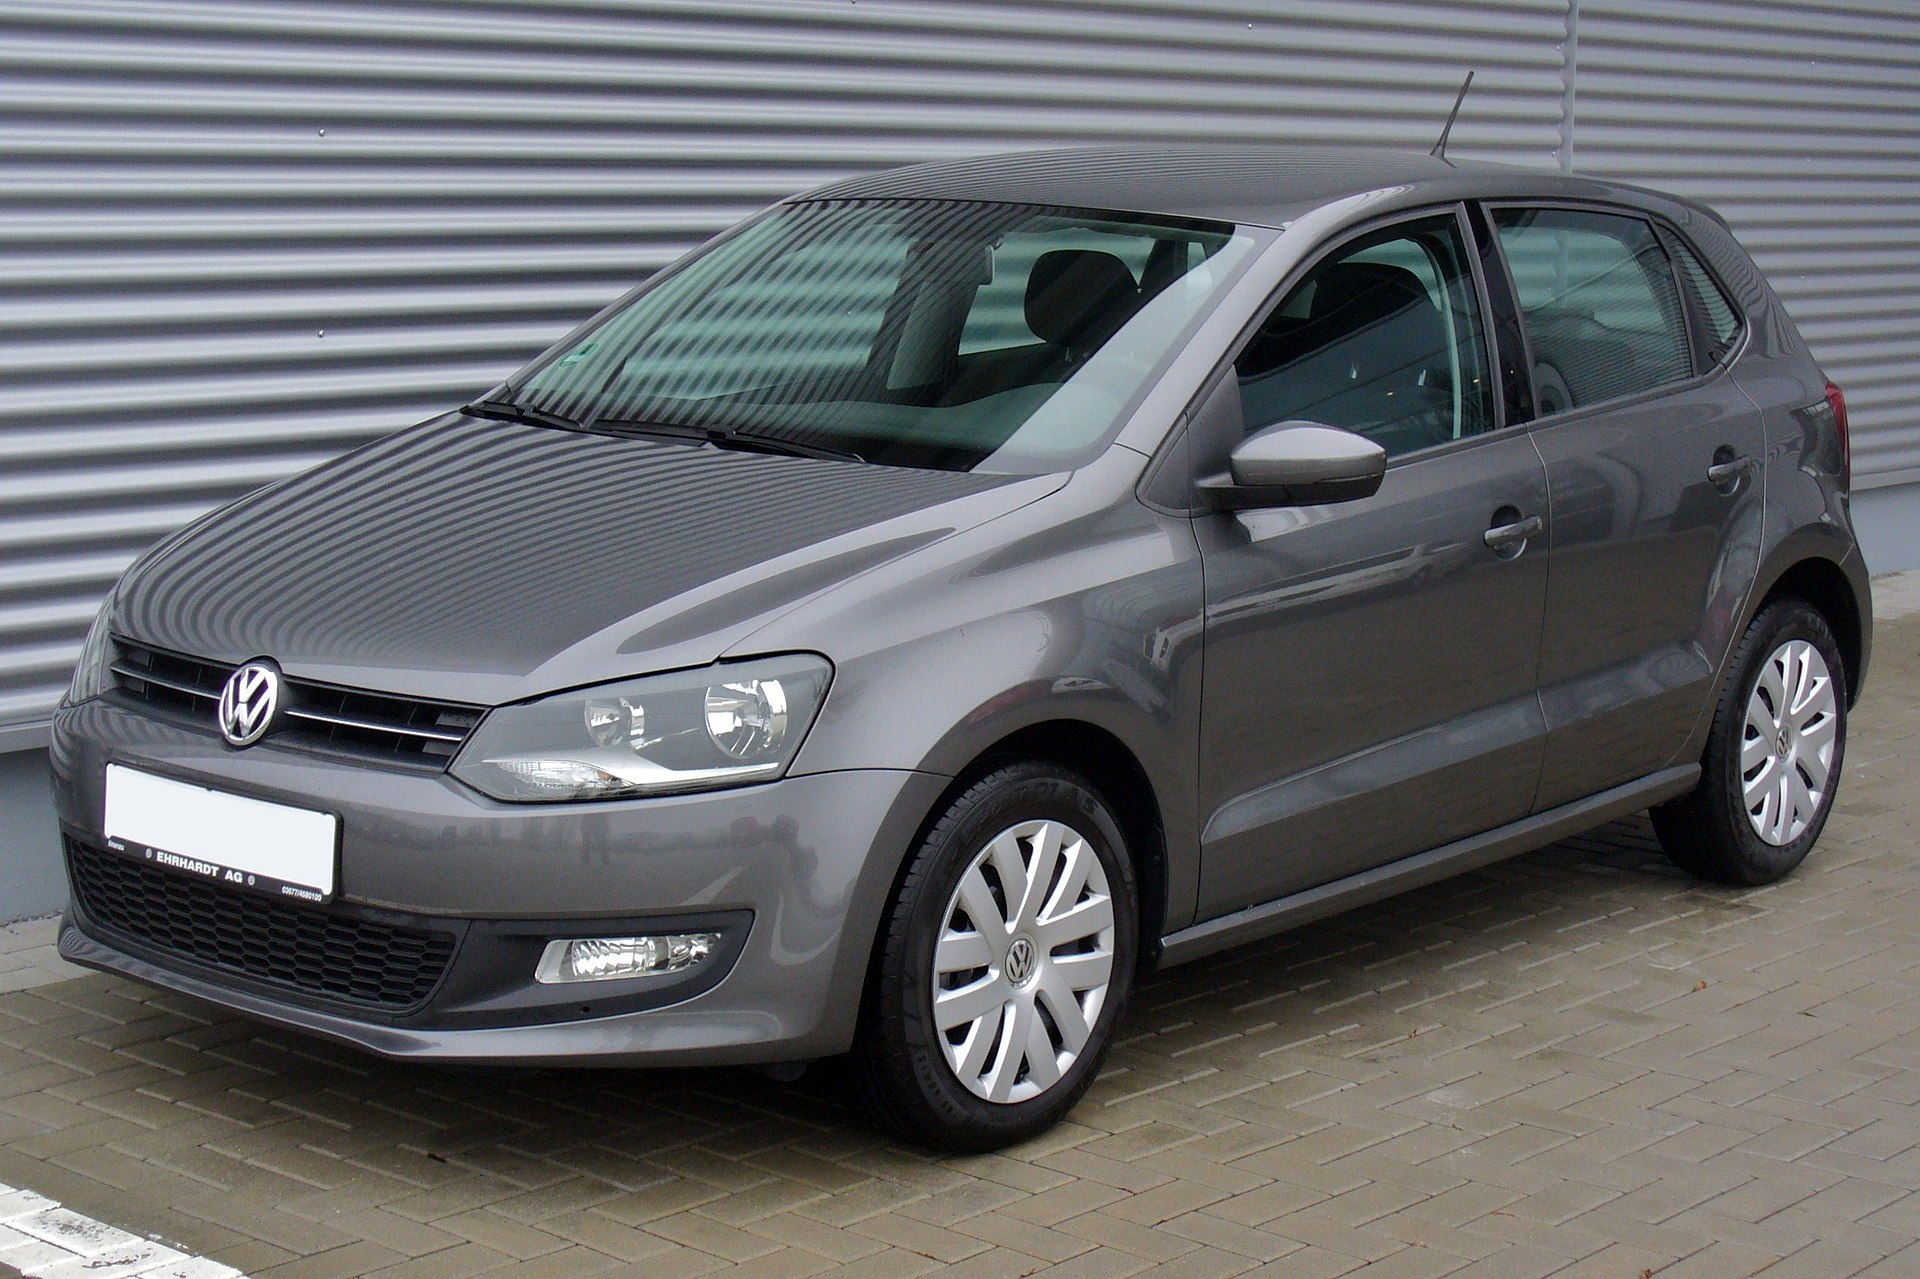 vw polo v wikipedia. Black Bedroom Furniture Sets. Home Design Ideas